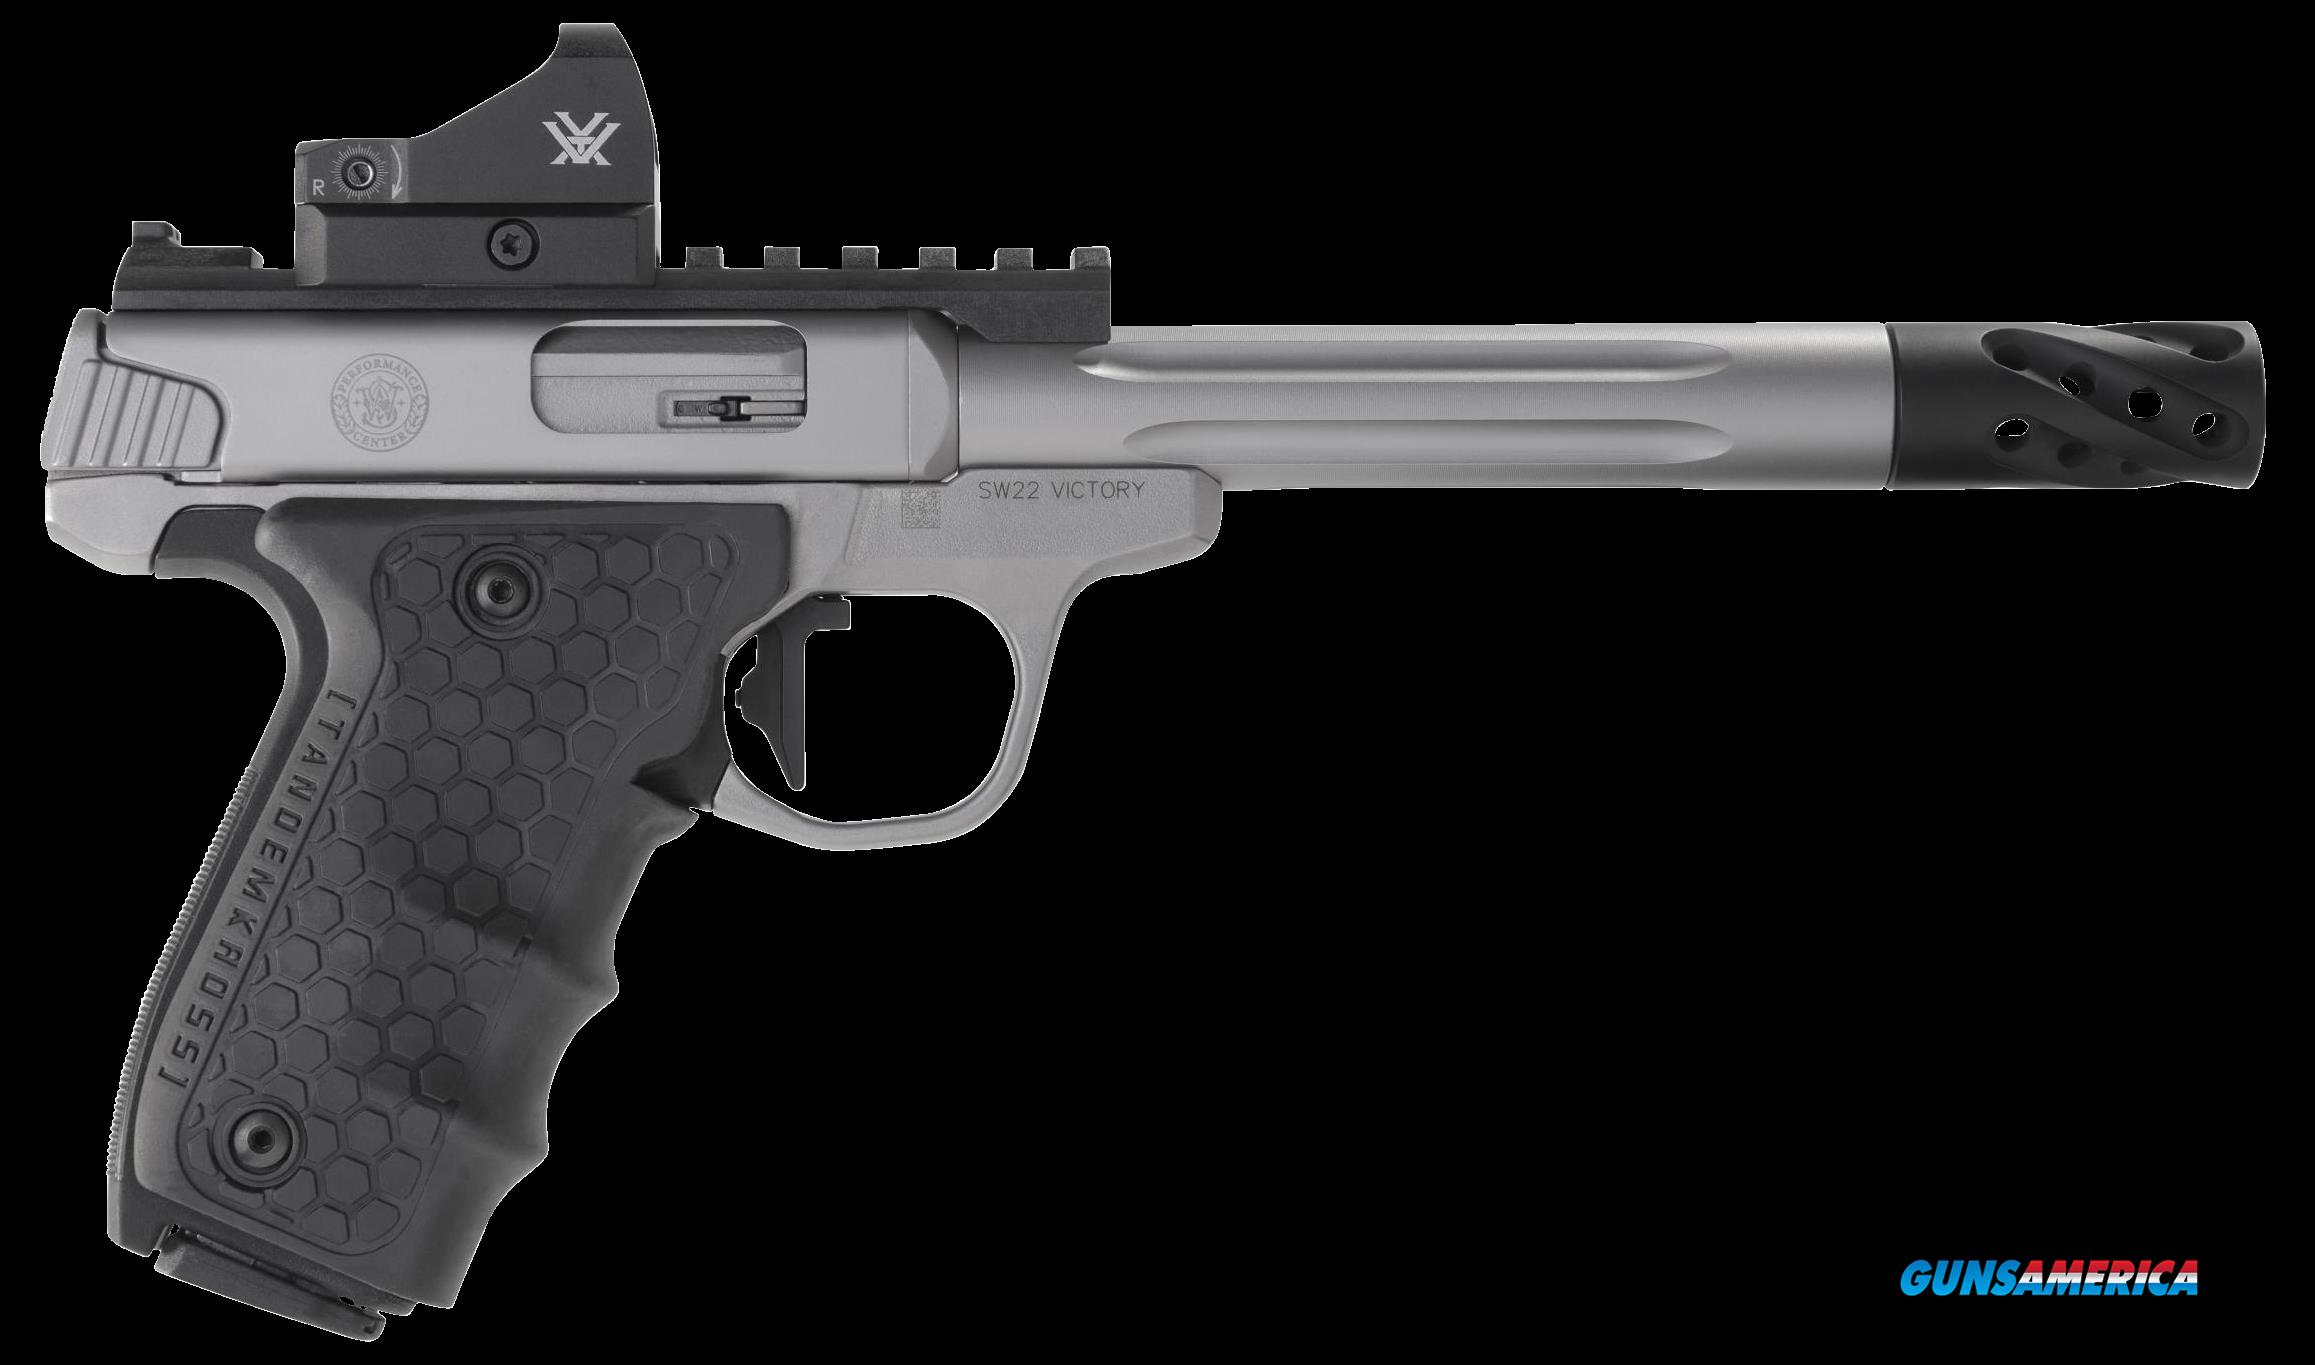 Smith & Wesson Performance Center, S&w Victory   12079 Pfmc 22lr 6in Trt Mb Rd   Ss  Guns > Pistols > 1911 Pistol Copies (non-Colt)